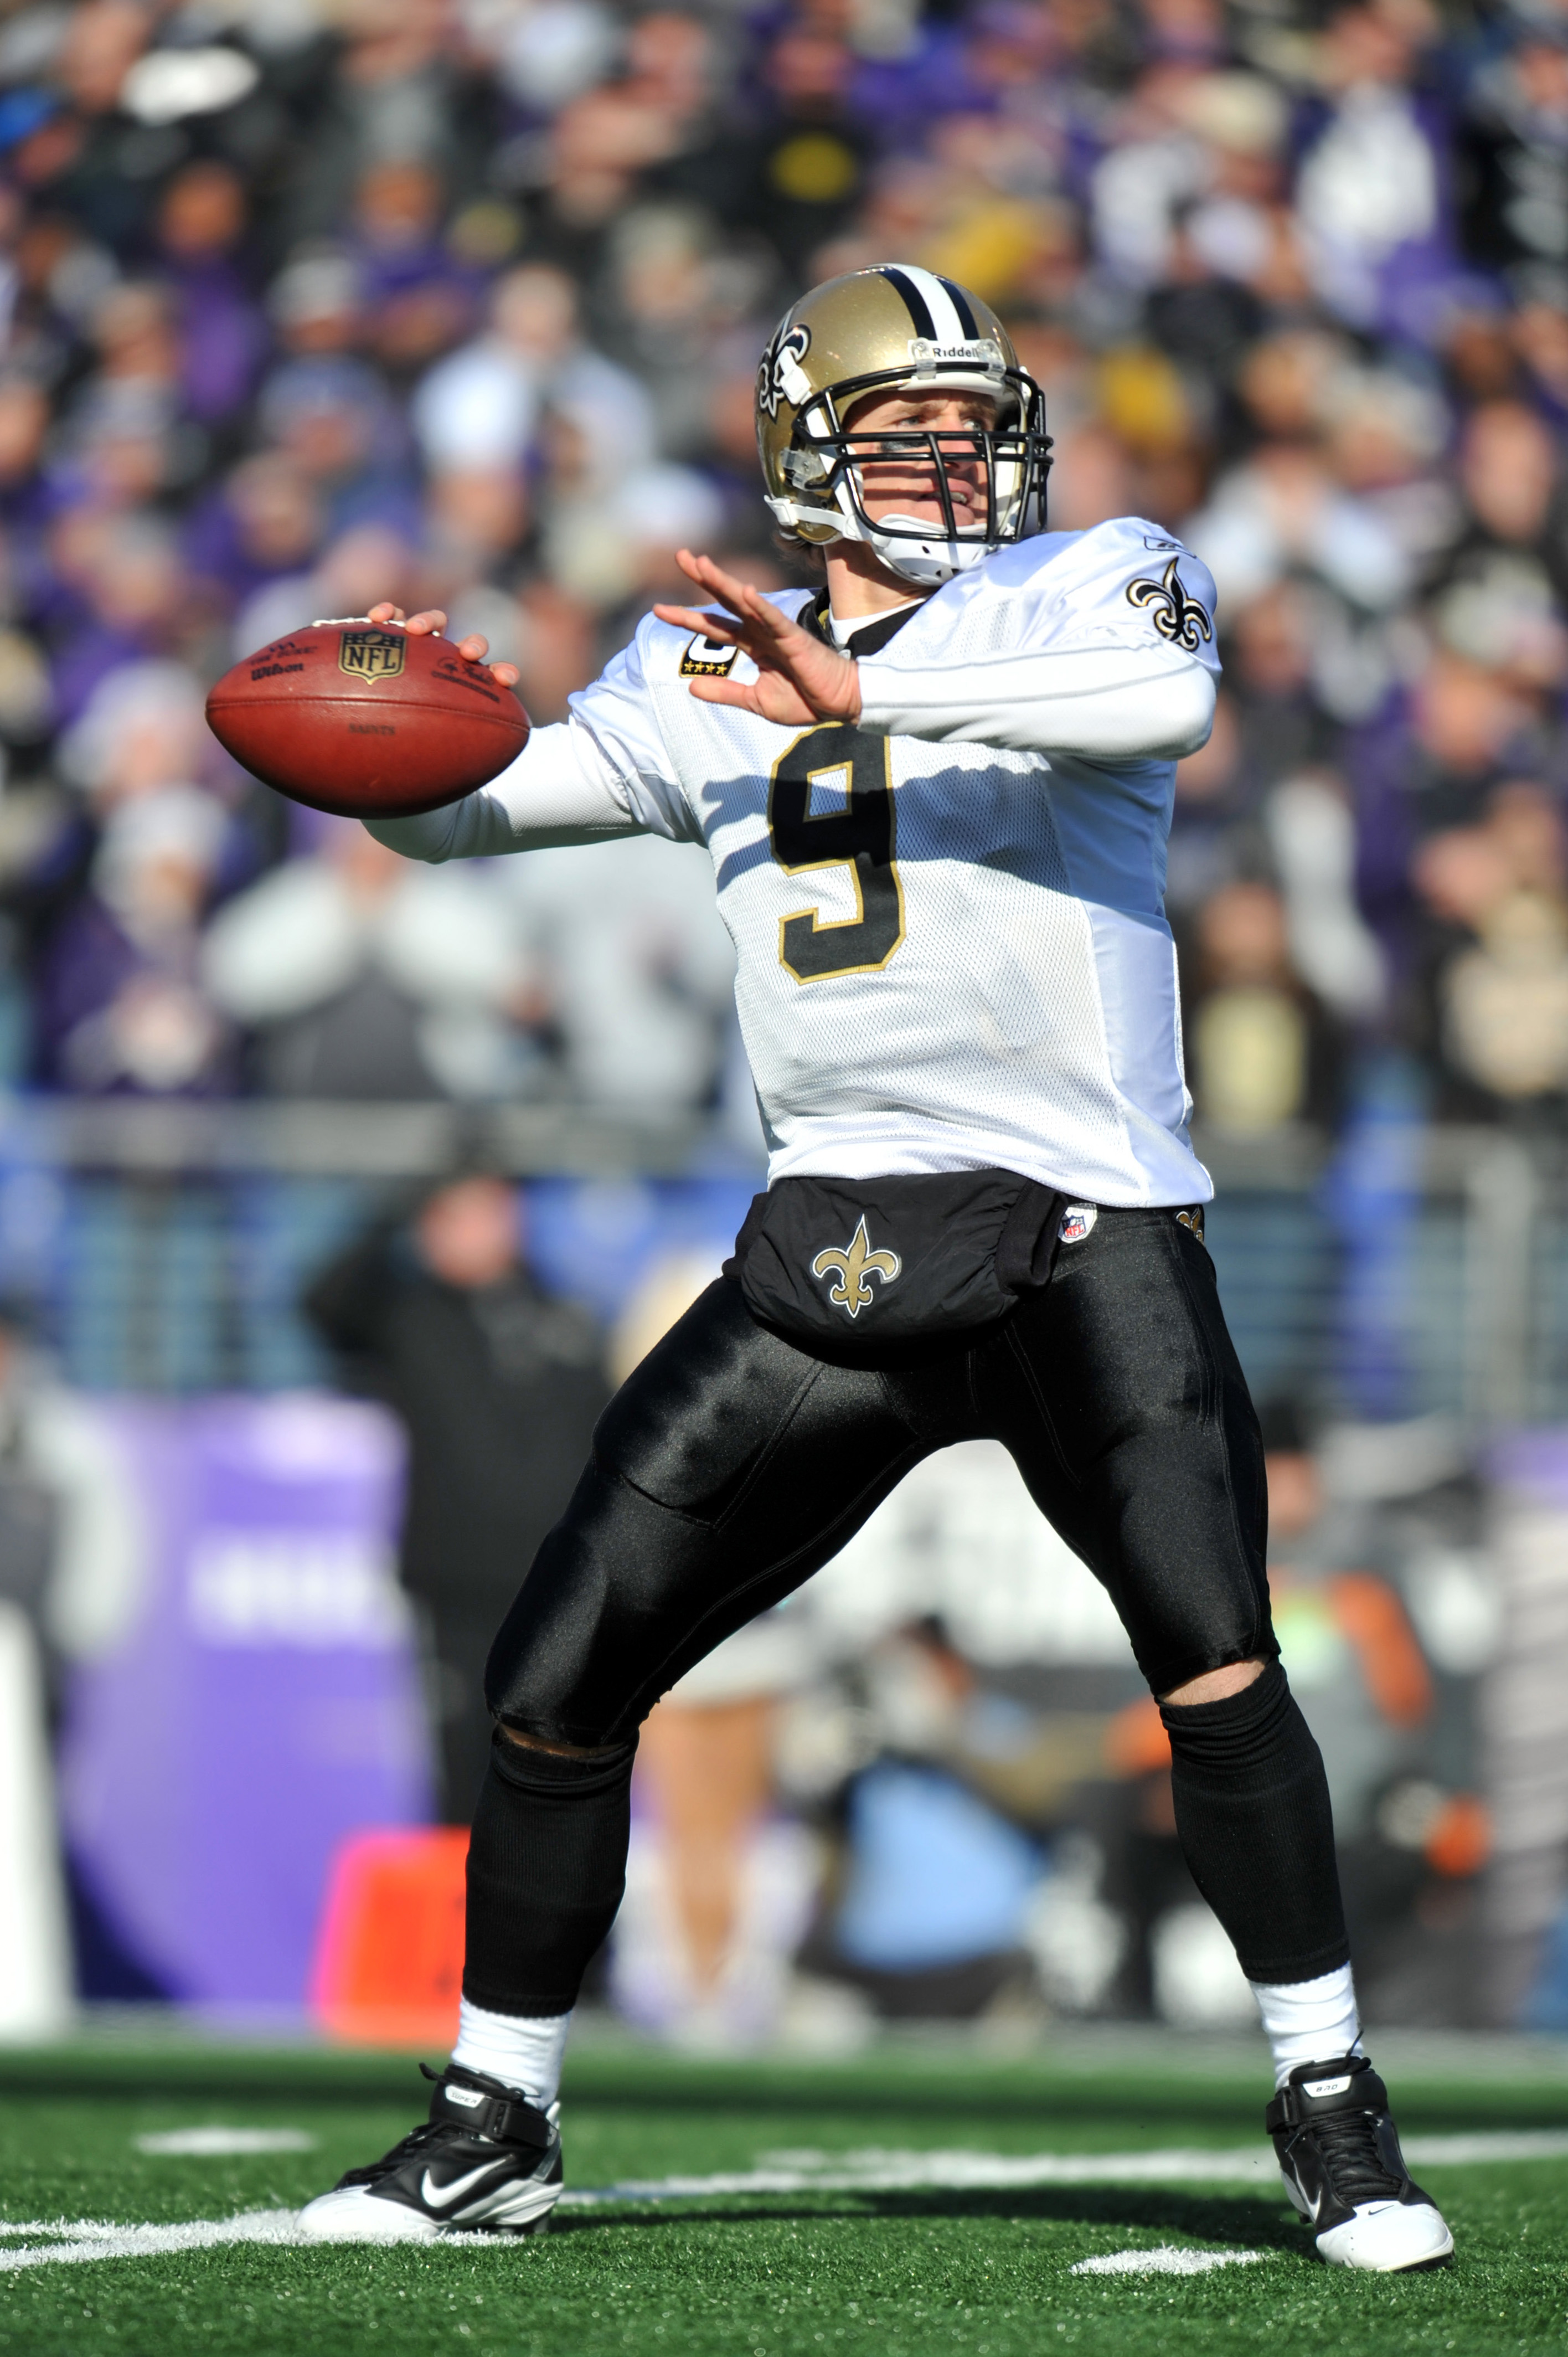 BALTIMORE, MD - DECEMBER 19:  Drew Brees #9 of the New Orleans Saints passes against the Baltimore Ravens  at M&T Bank Stadium on December 19, 2010 in Baltimore, Maryland. The Ravens lead the Saints at the half 21-14. (Photo by Larry French/Getty Images)